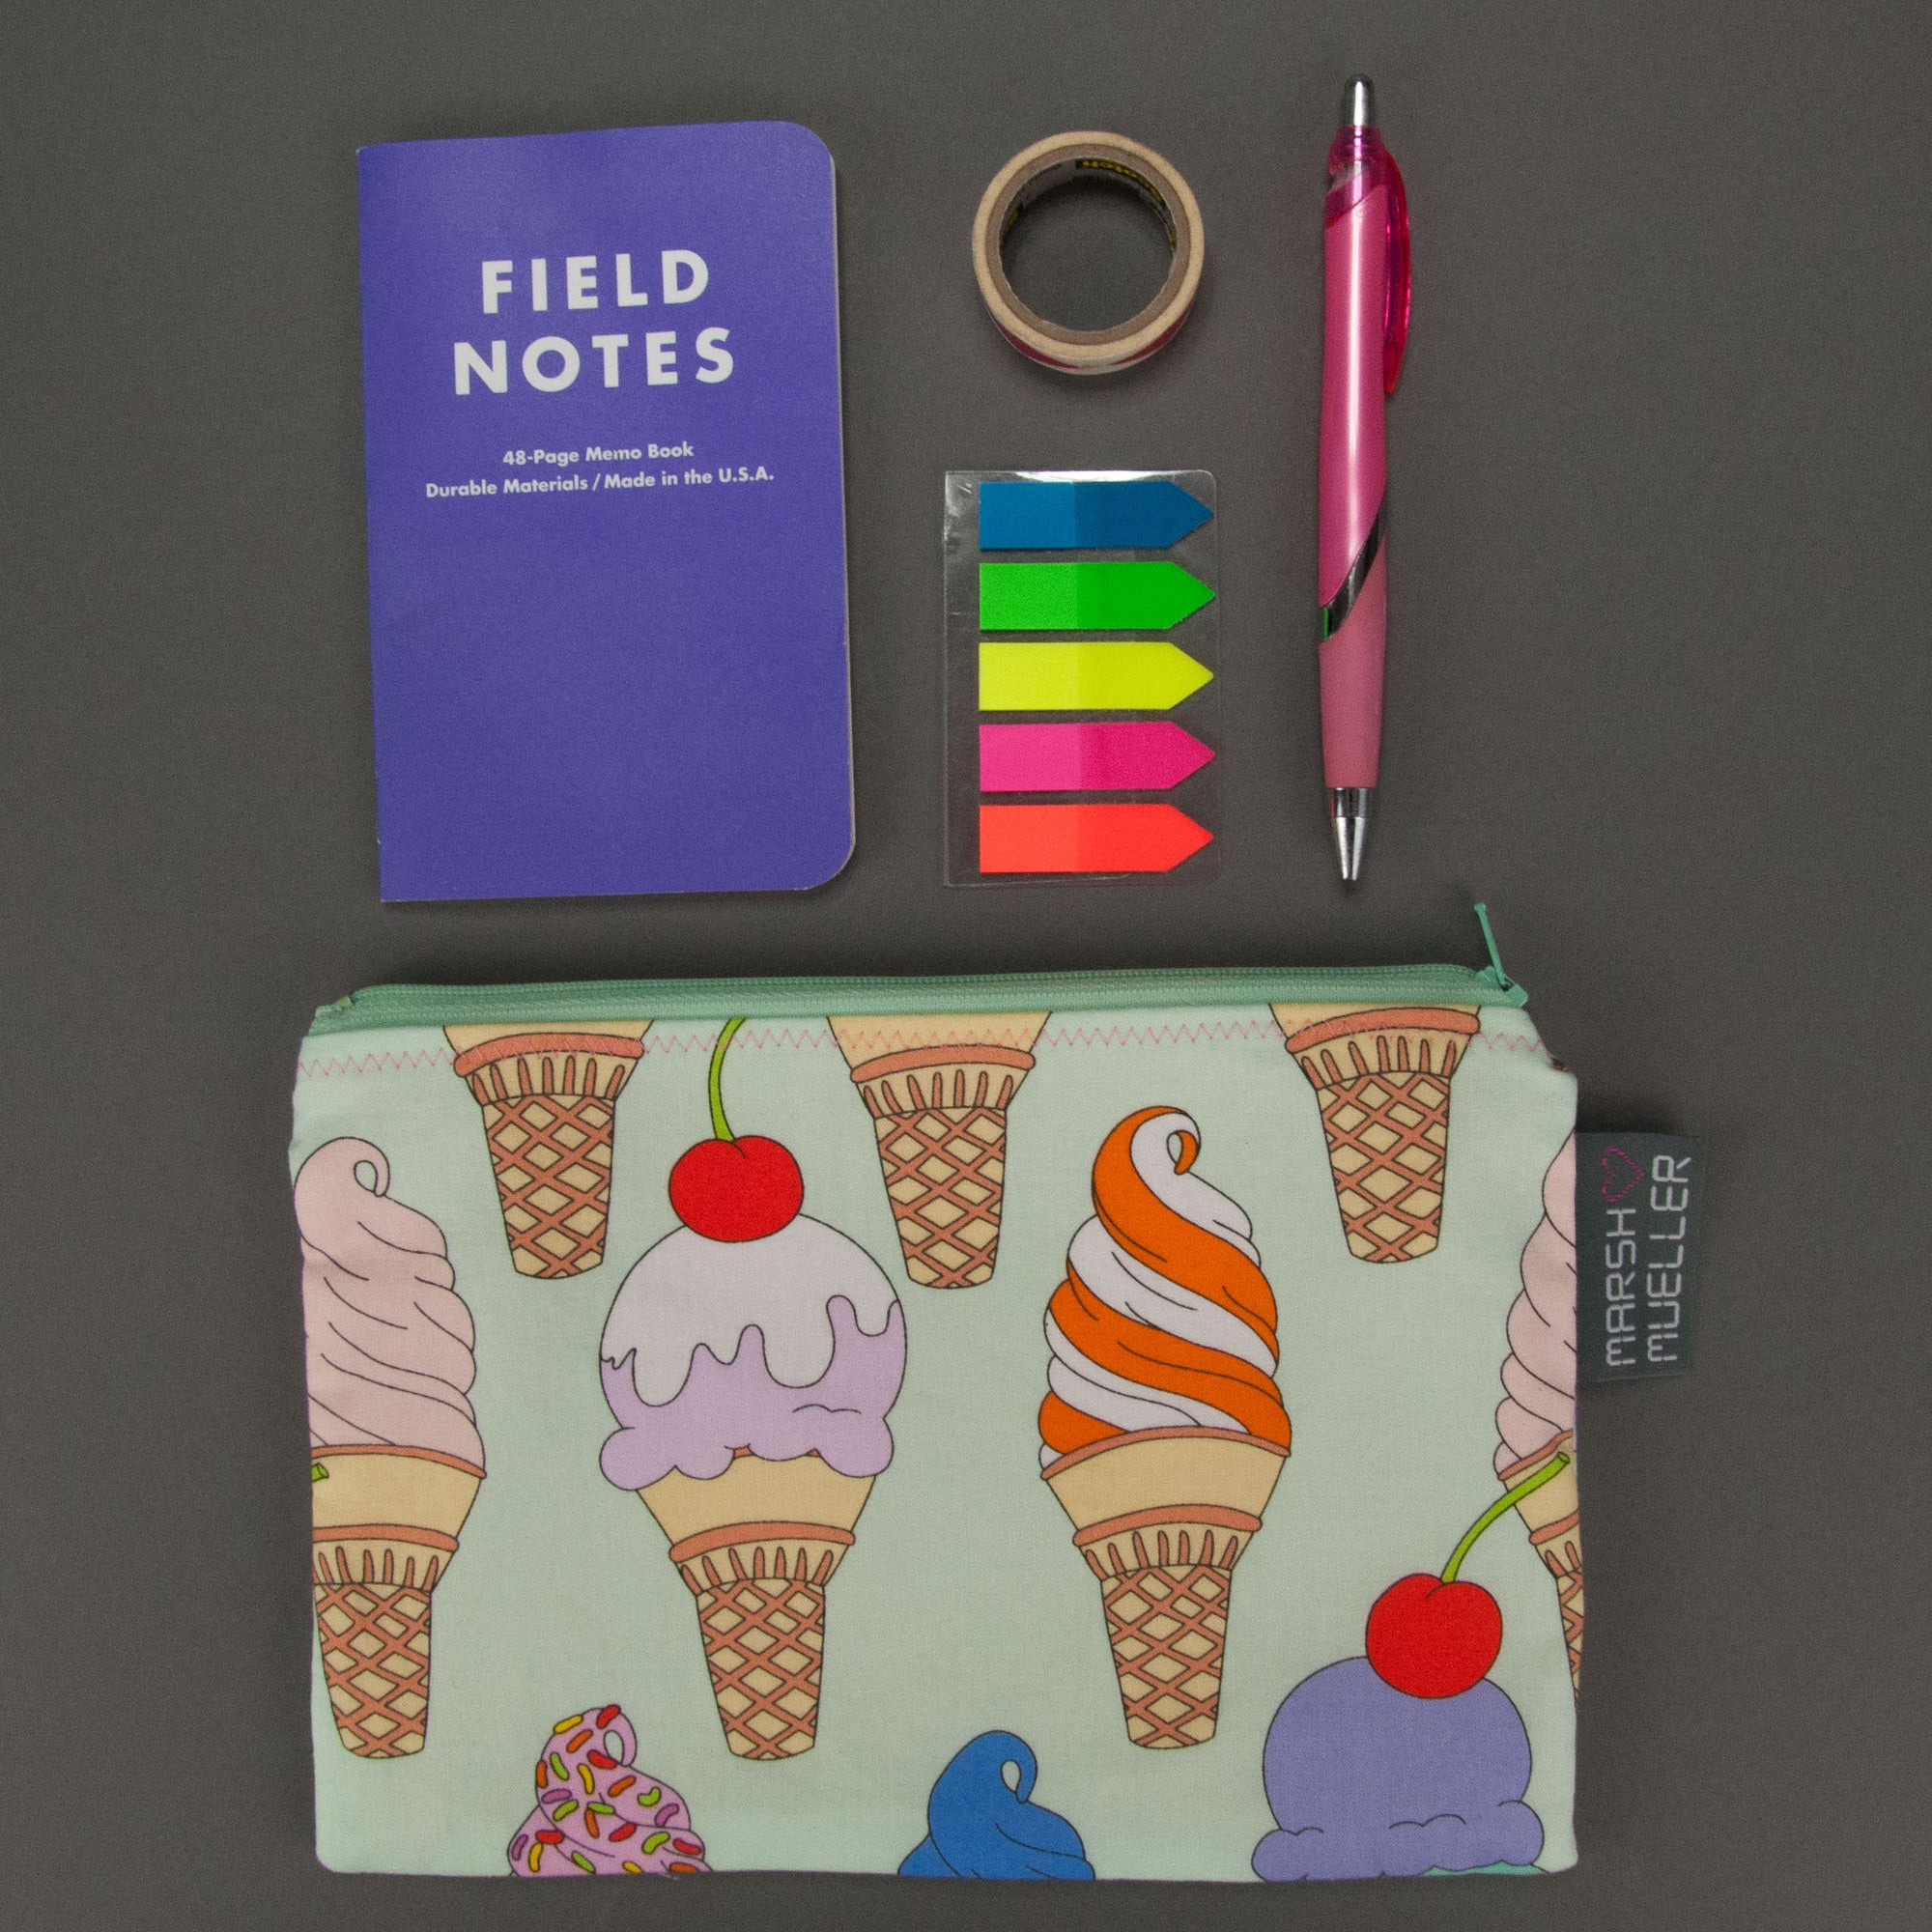 Image of flatlay of Marshmueller Zipper Pouch made from an ice cream print fabric with a notebook, washi tape, sticky flags, and a pink pen placed above the Zipper Pouch. Image is on a grey background.